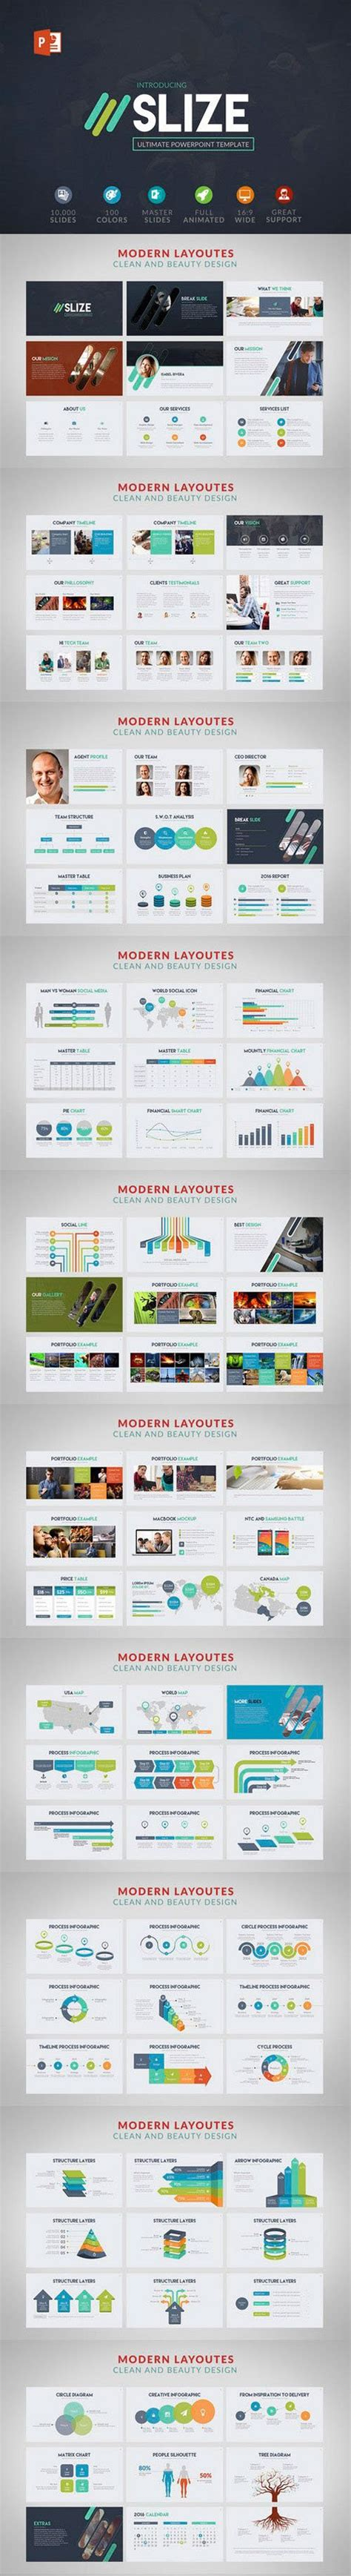 powerpoint templates nulled slize powerpoint template creativemarket 530837